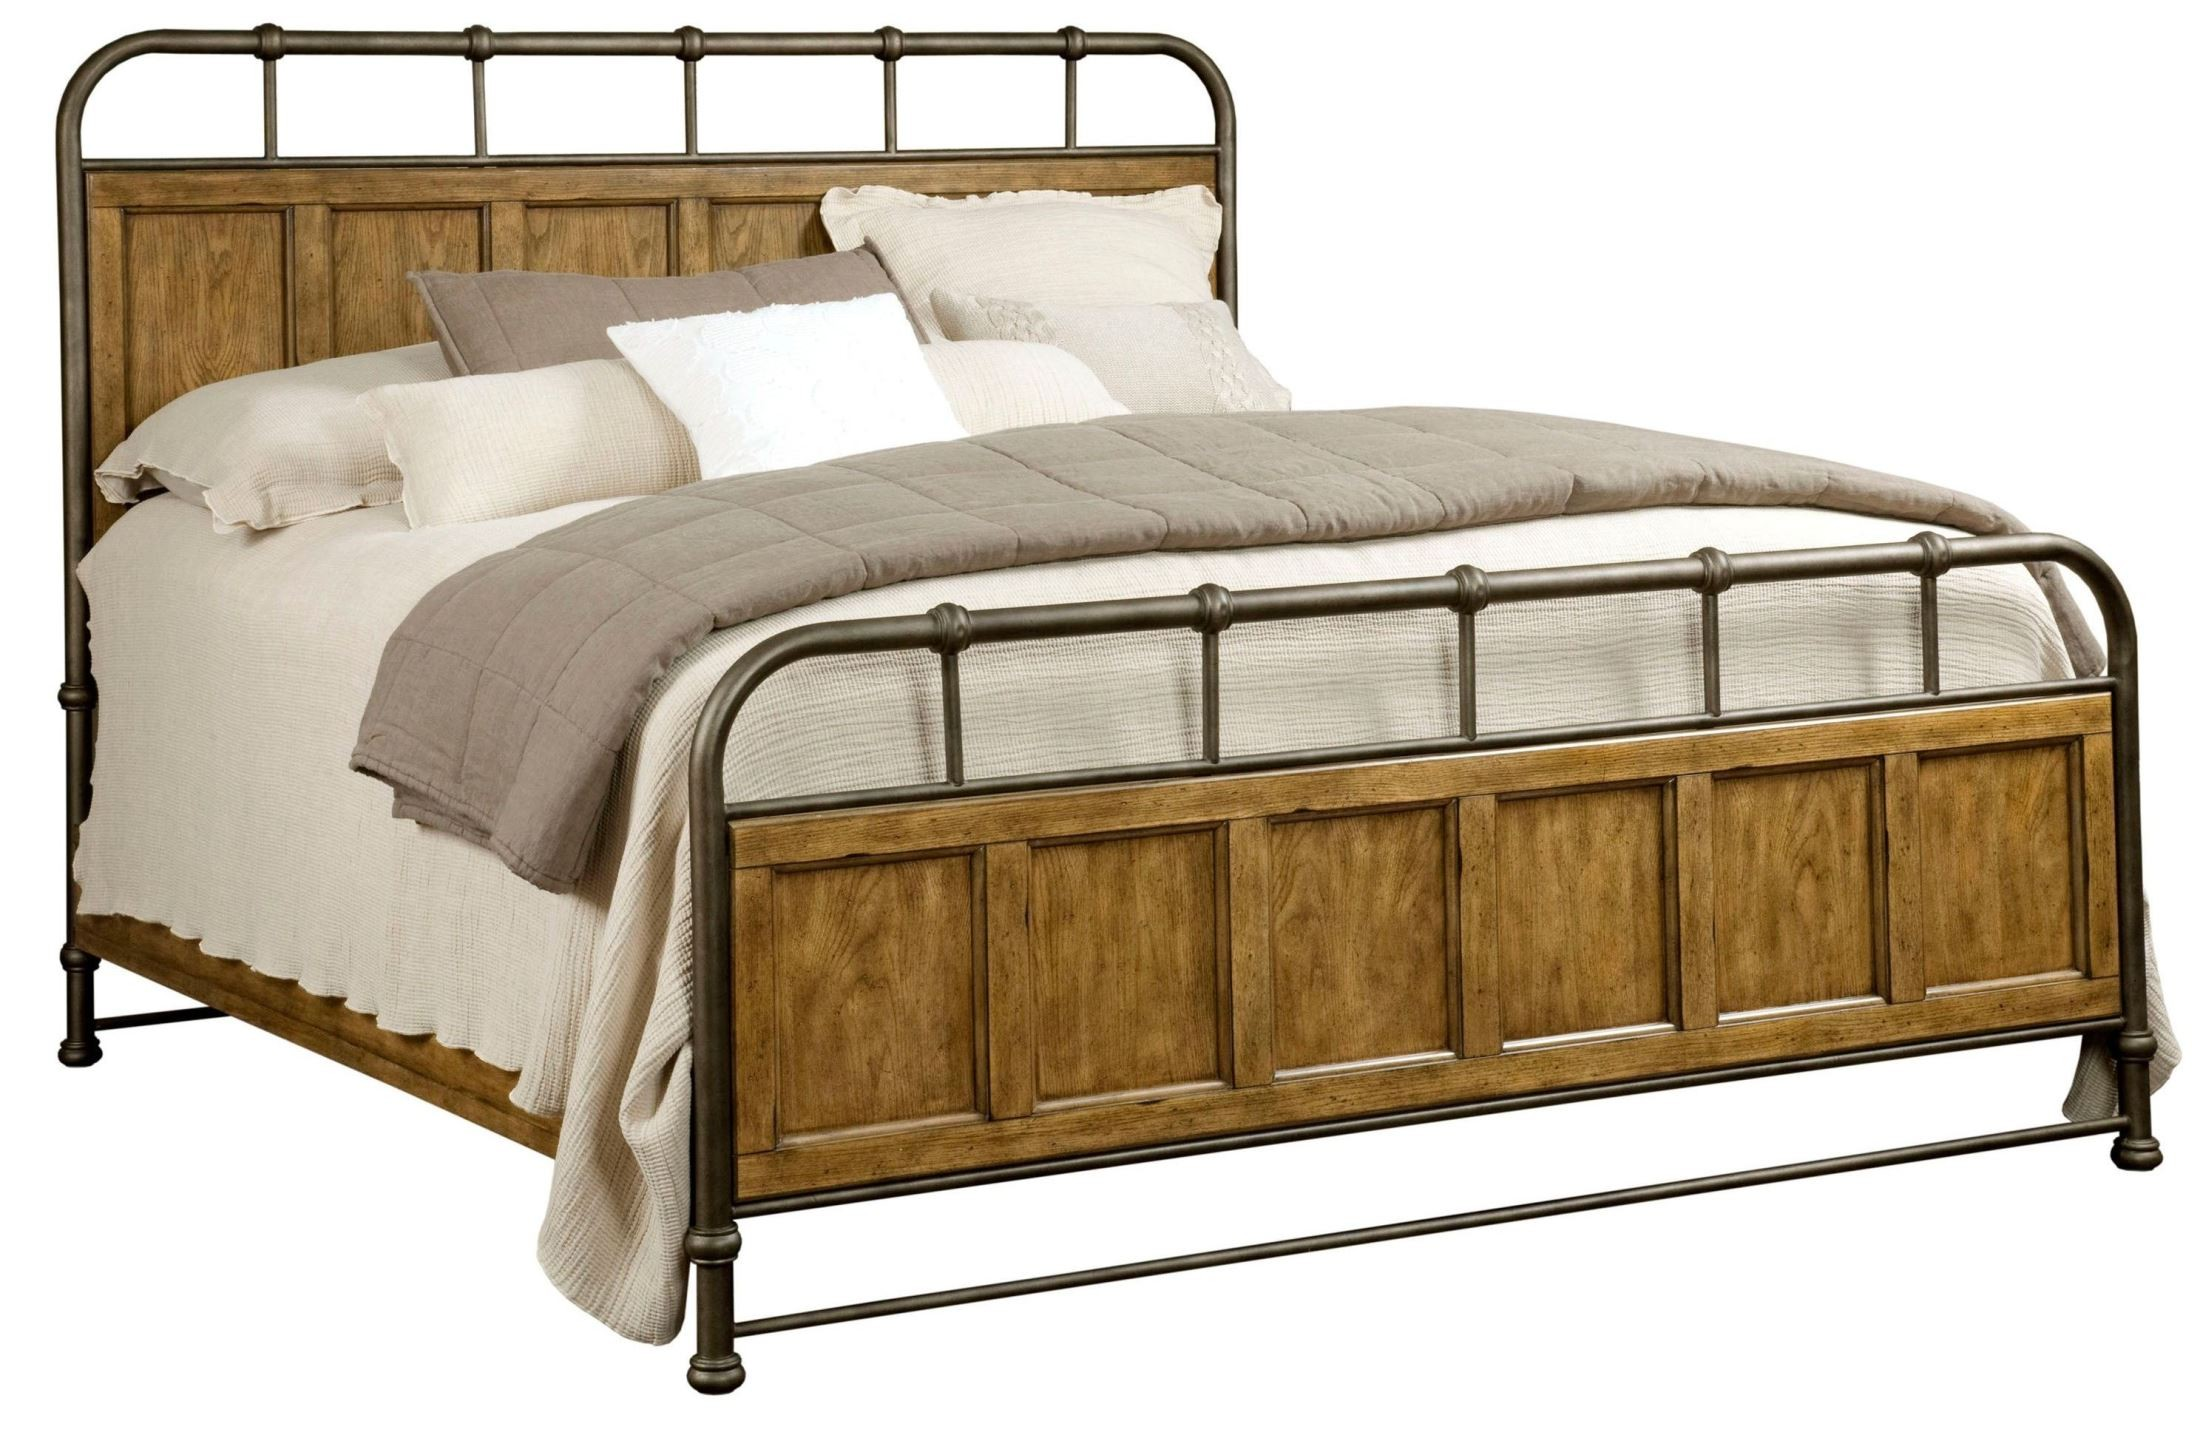 New vintage brown metal wood bedstead bedroom set from for Metal bedroom furniture